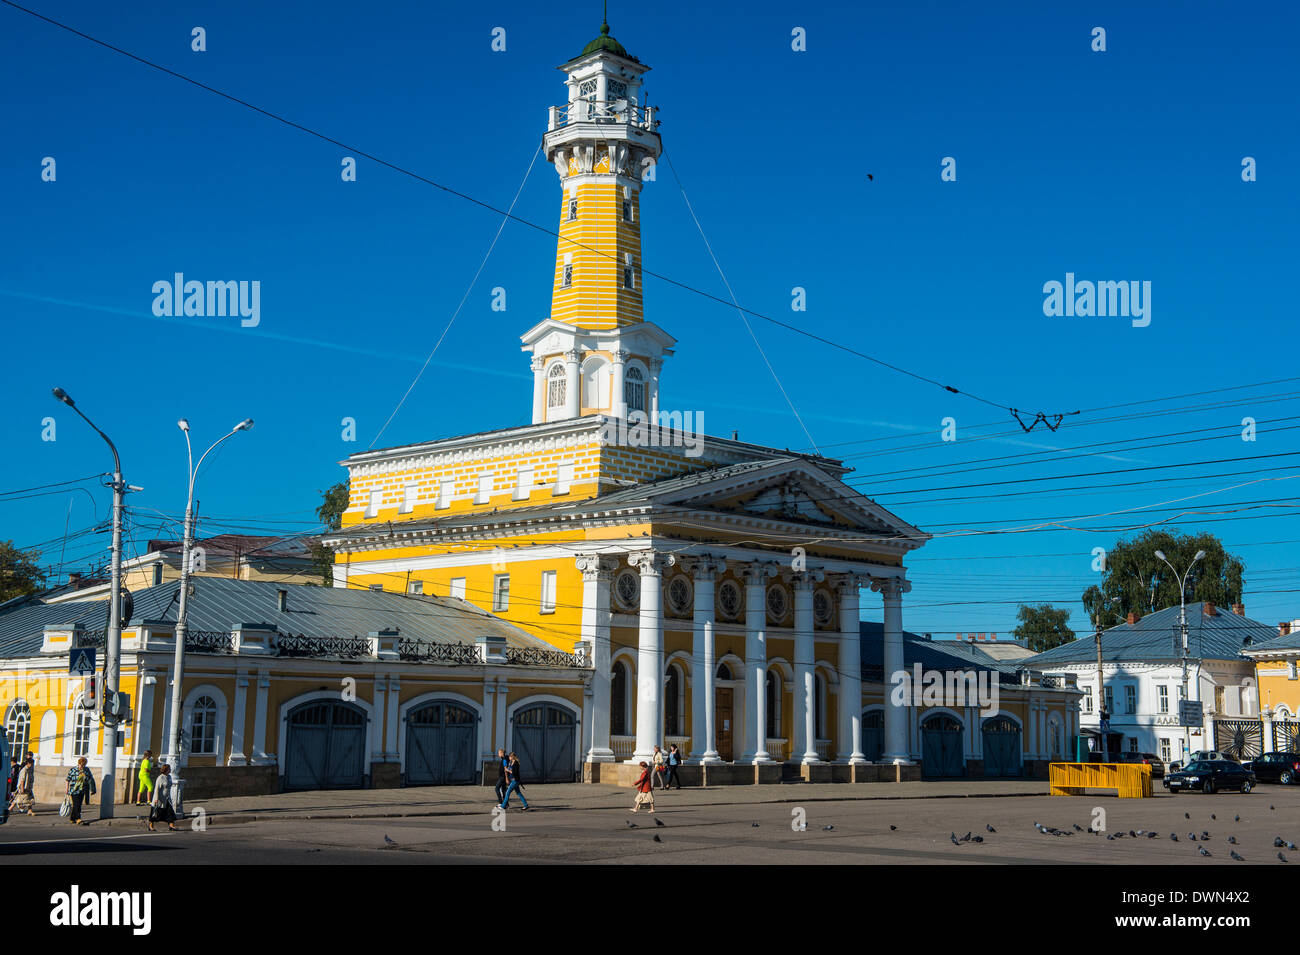 Fire tower on Susaninskaya Square, Kostroma, Golden Ring, Russia, Europe - Stock Image